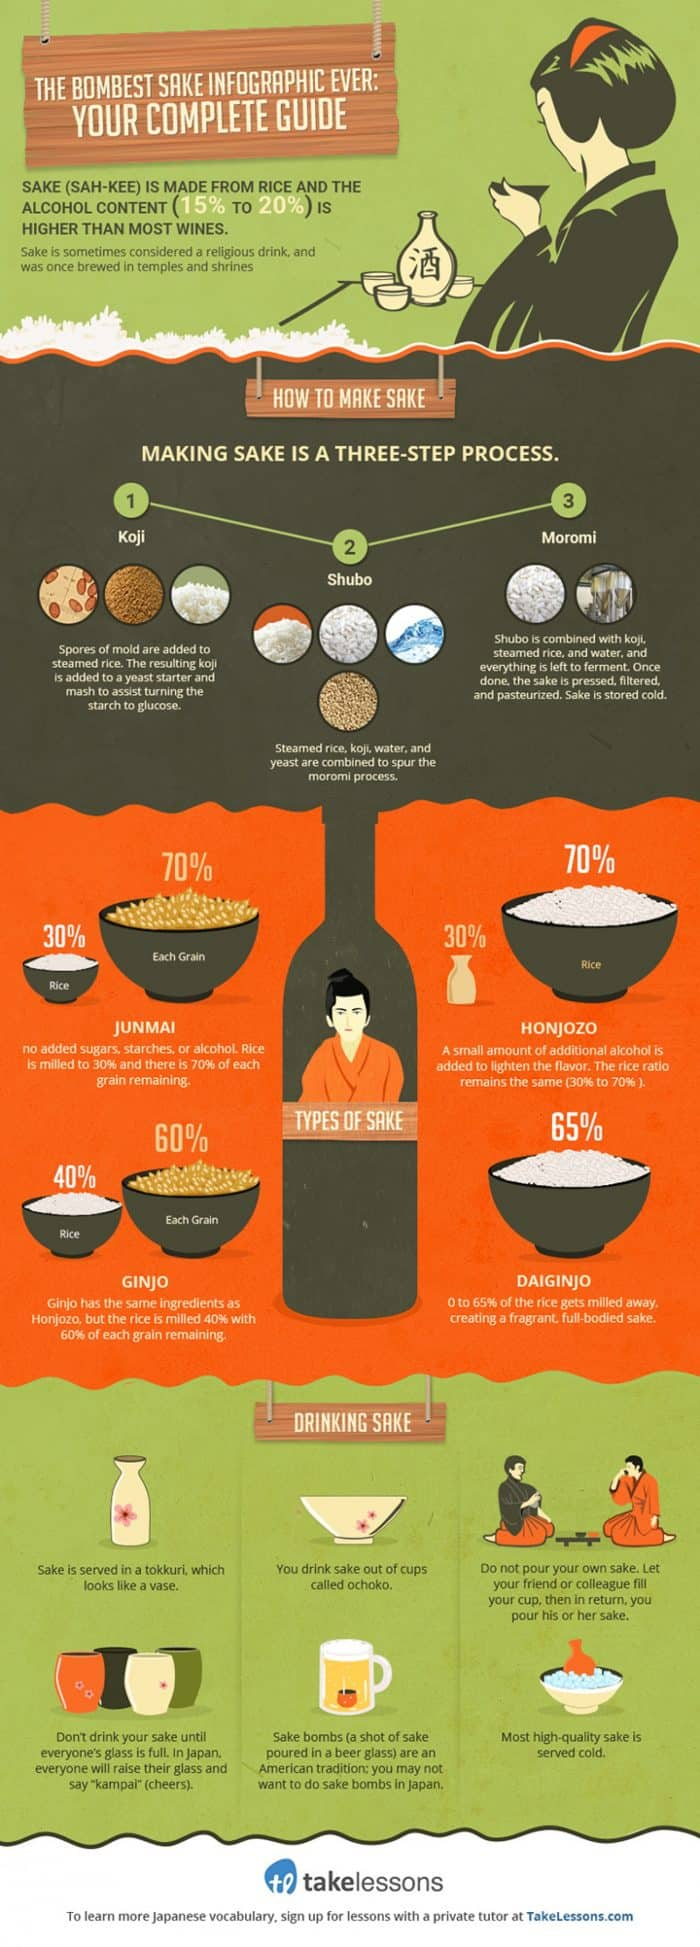 Shows how sake is made and traditions involving it in Japan